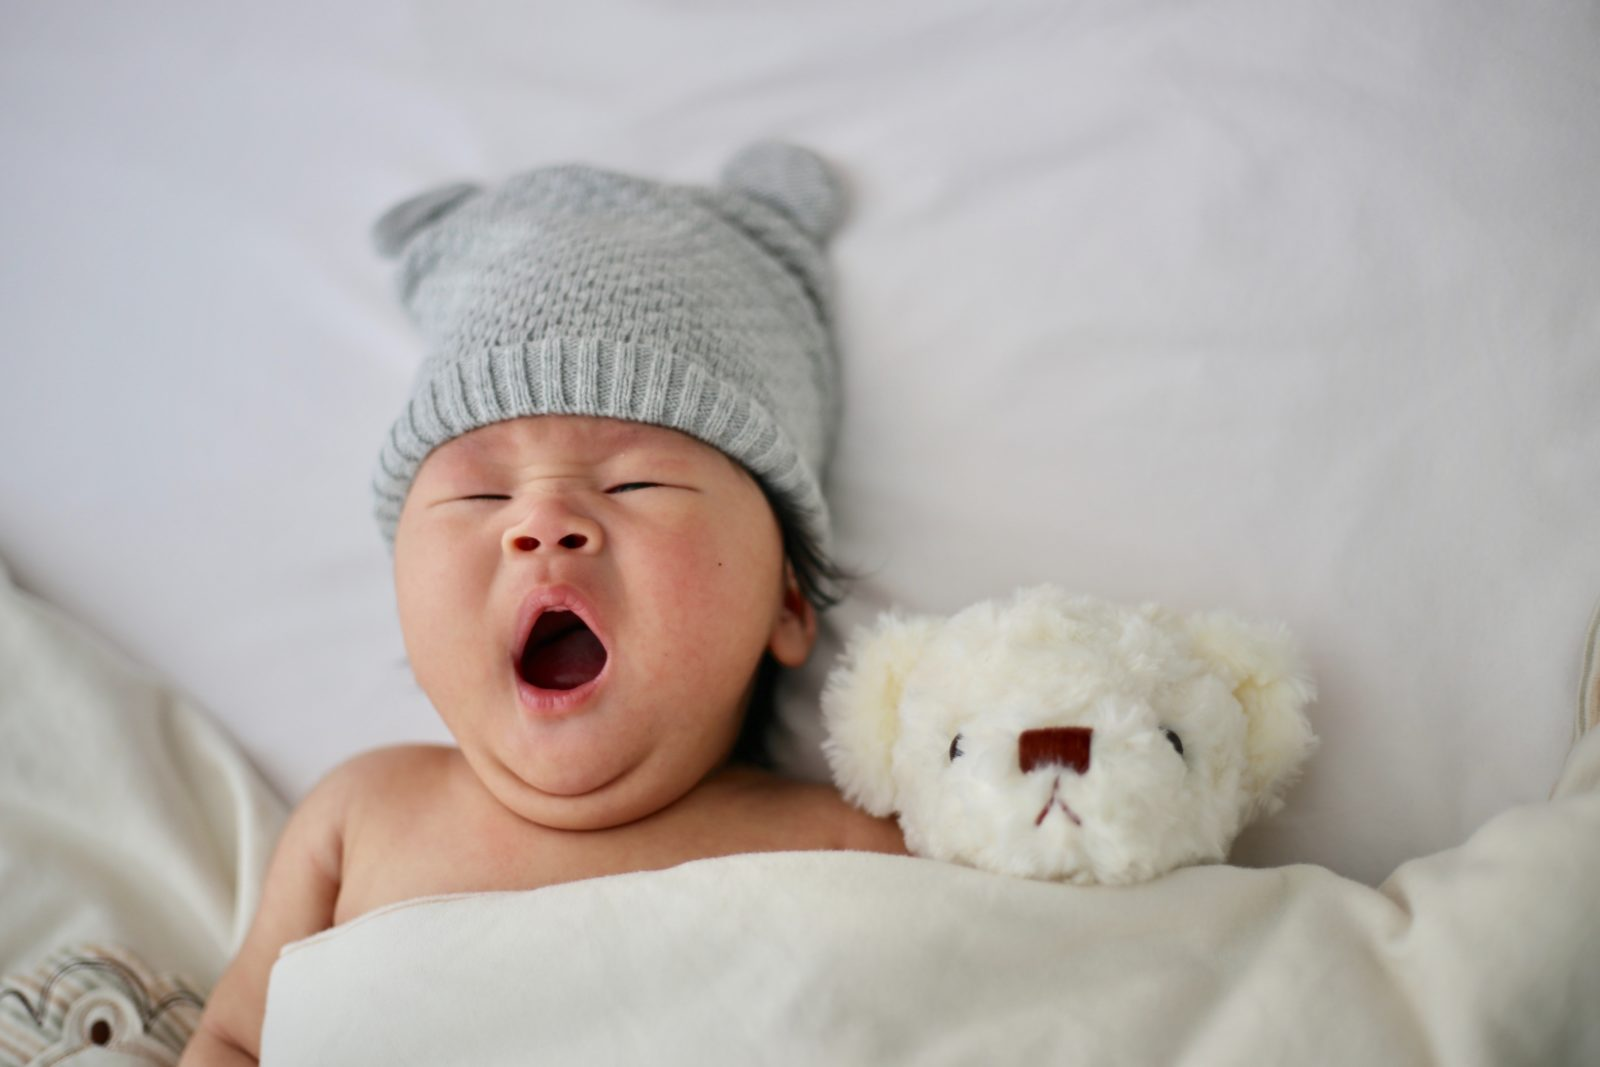 15 photos to capture in baby's first year